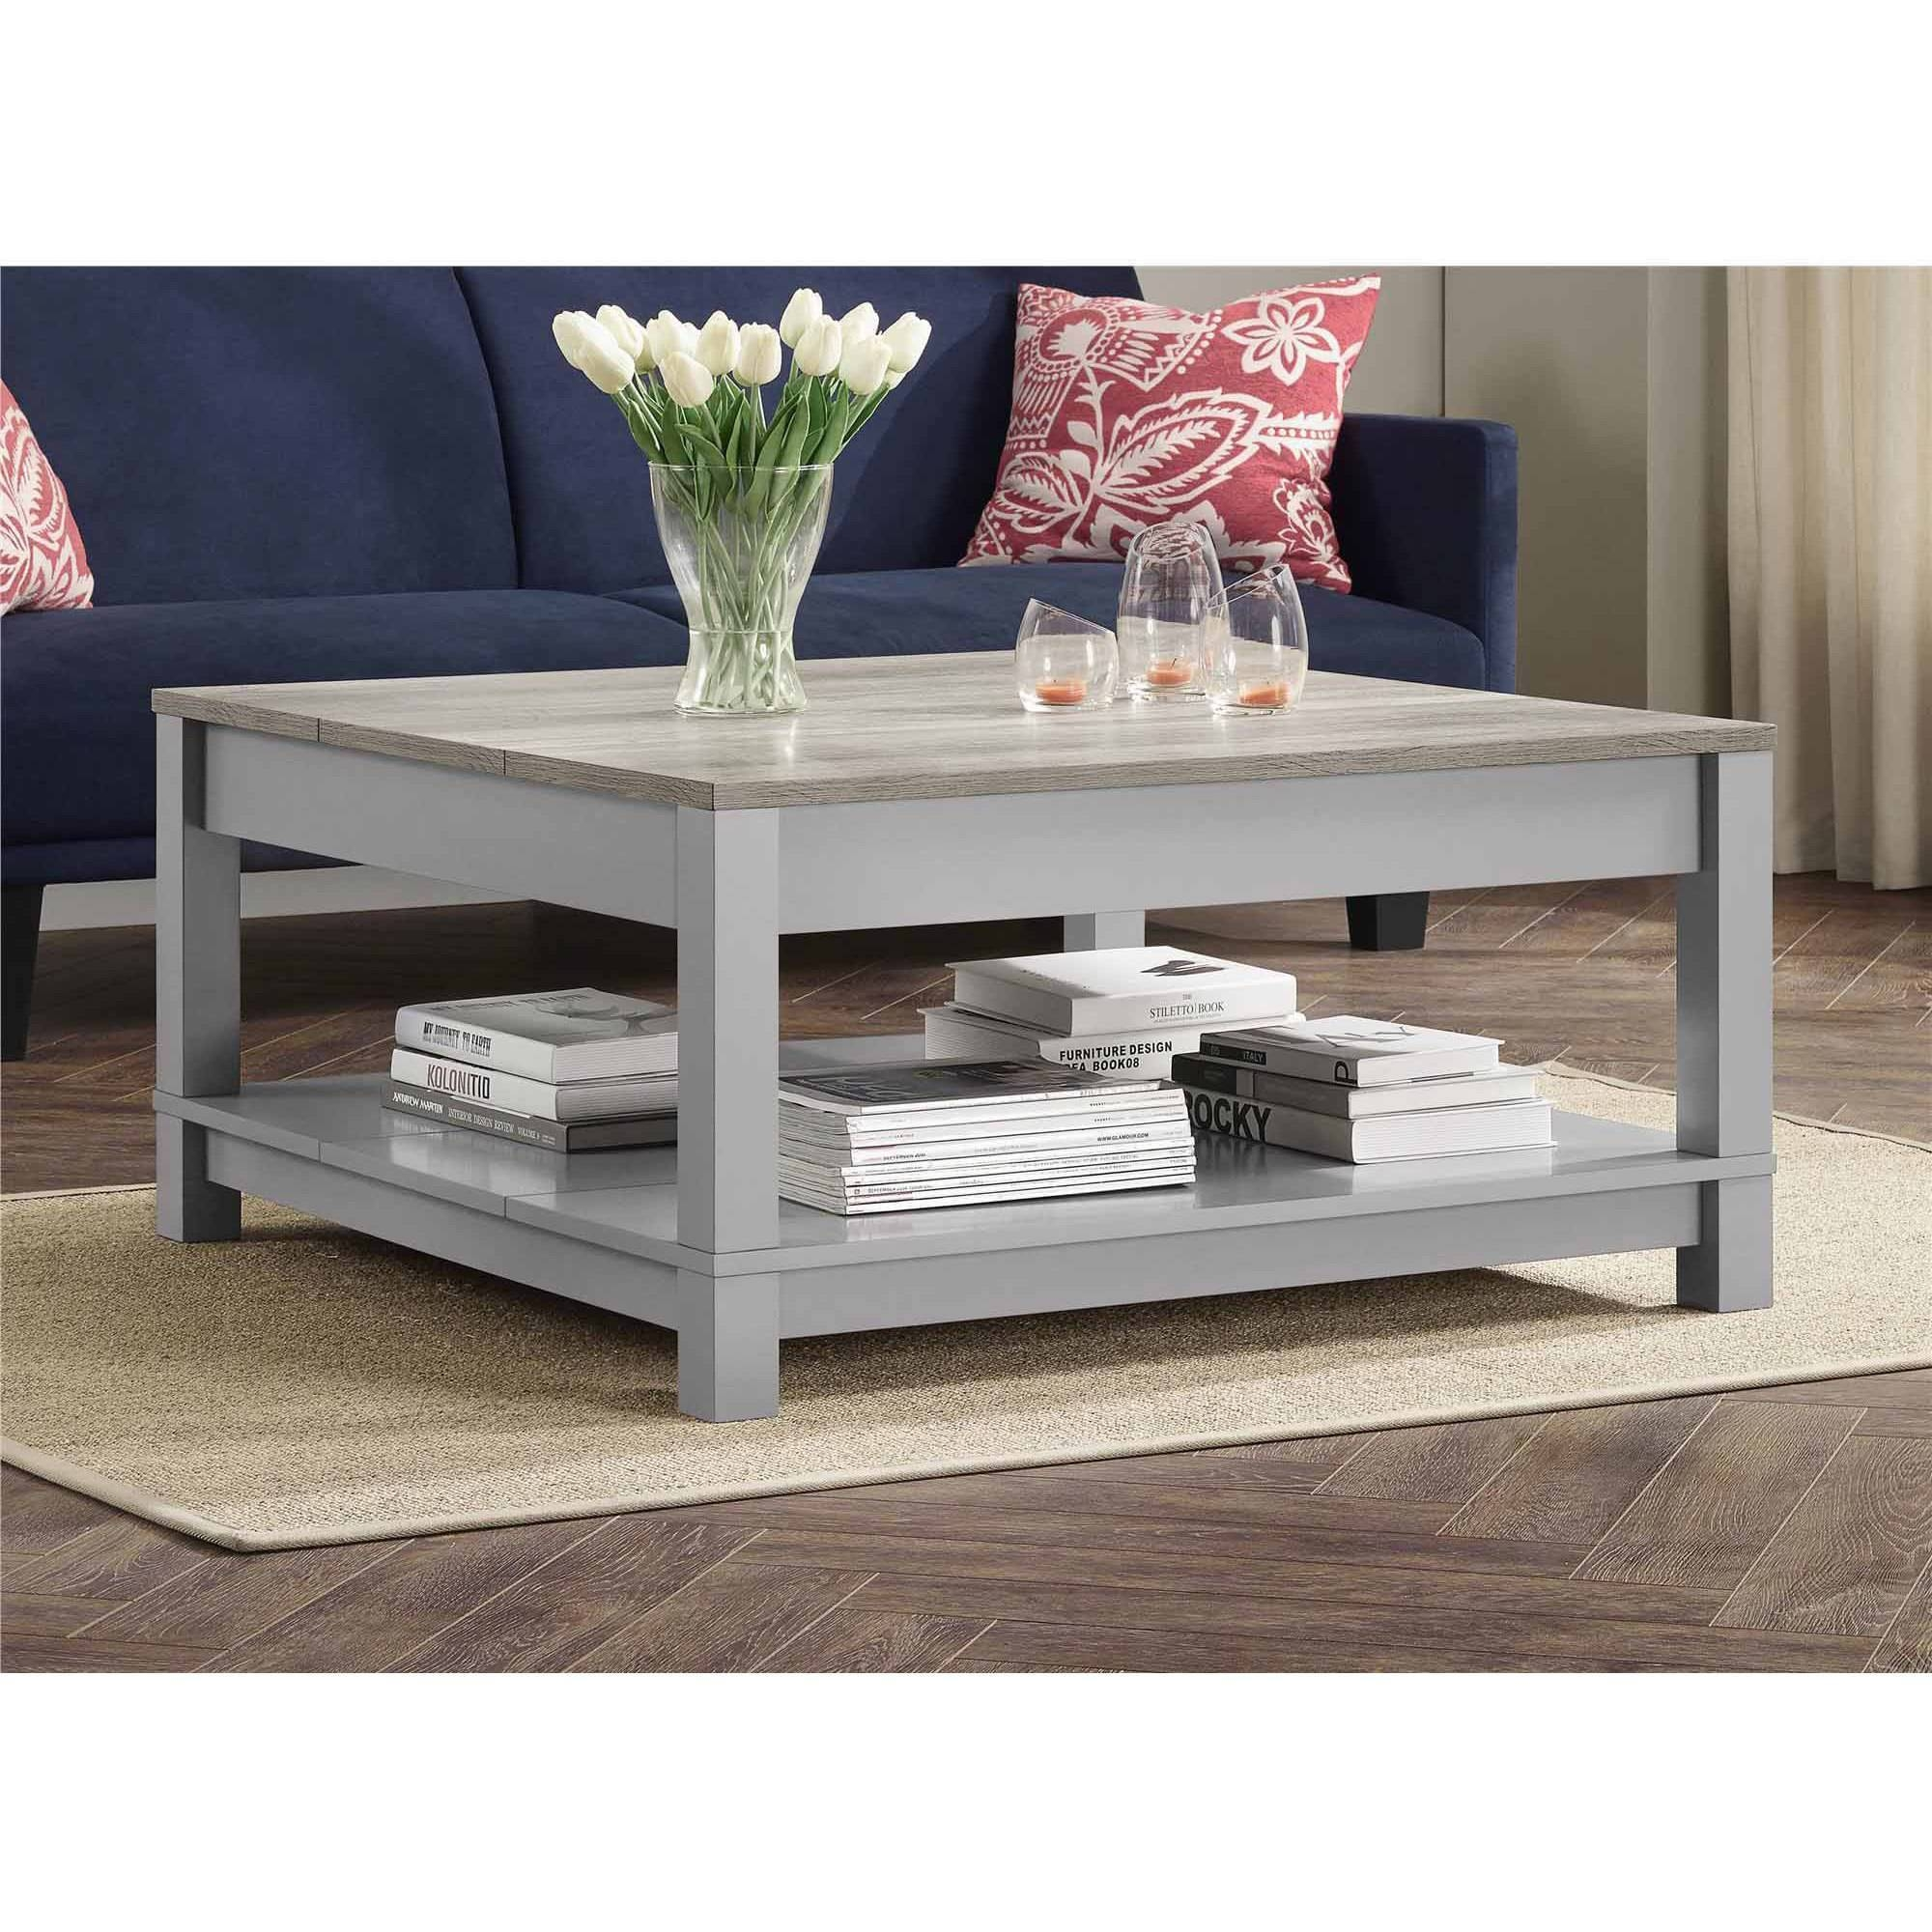 Living Room: Alluring Design Of Coffee Table Walmart For within Cheap Oak Coffee Tables (Image 26 of 30)